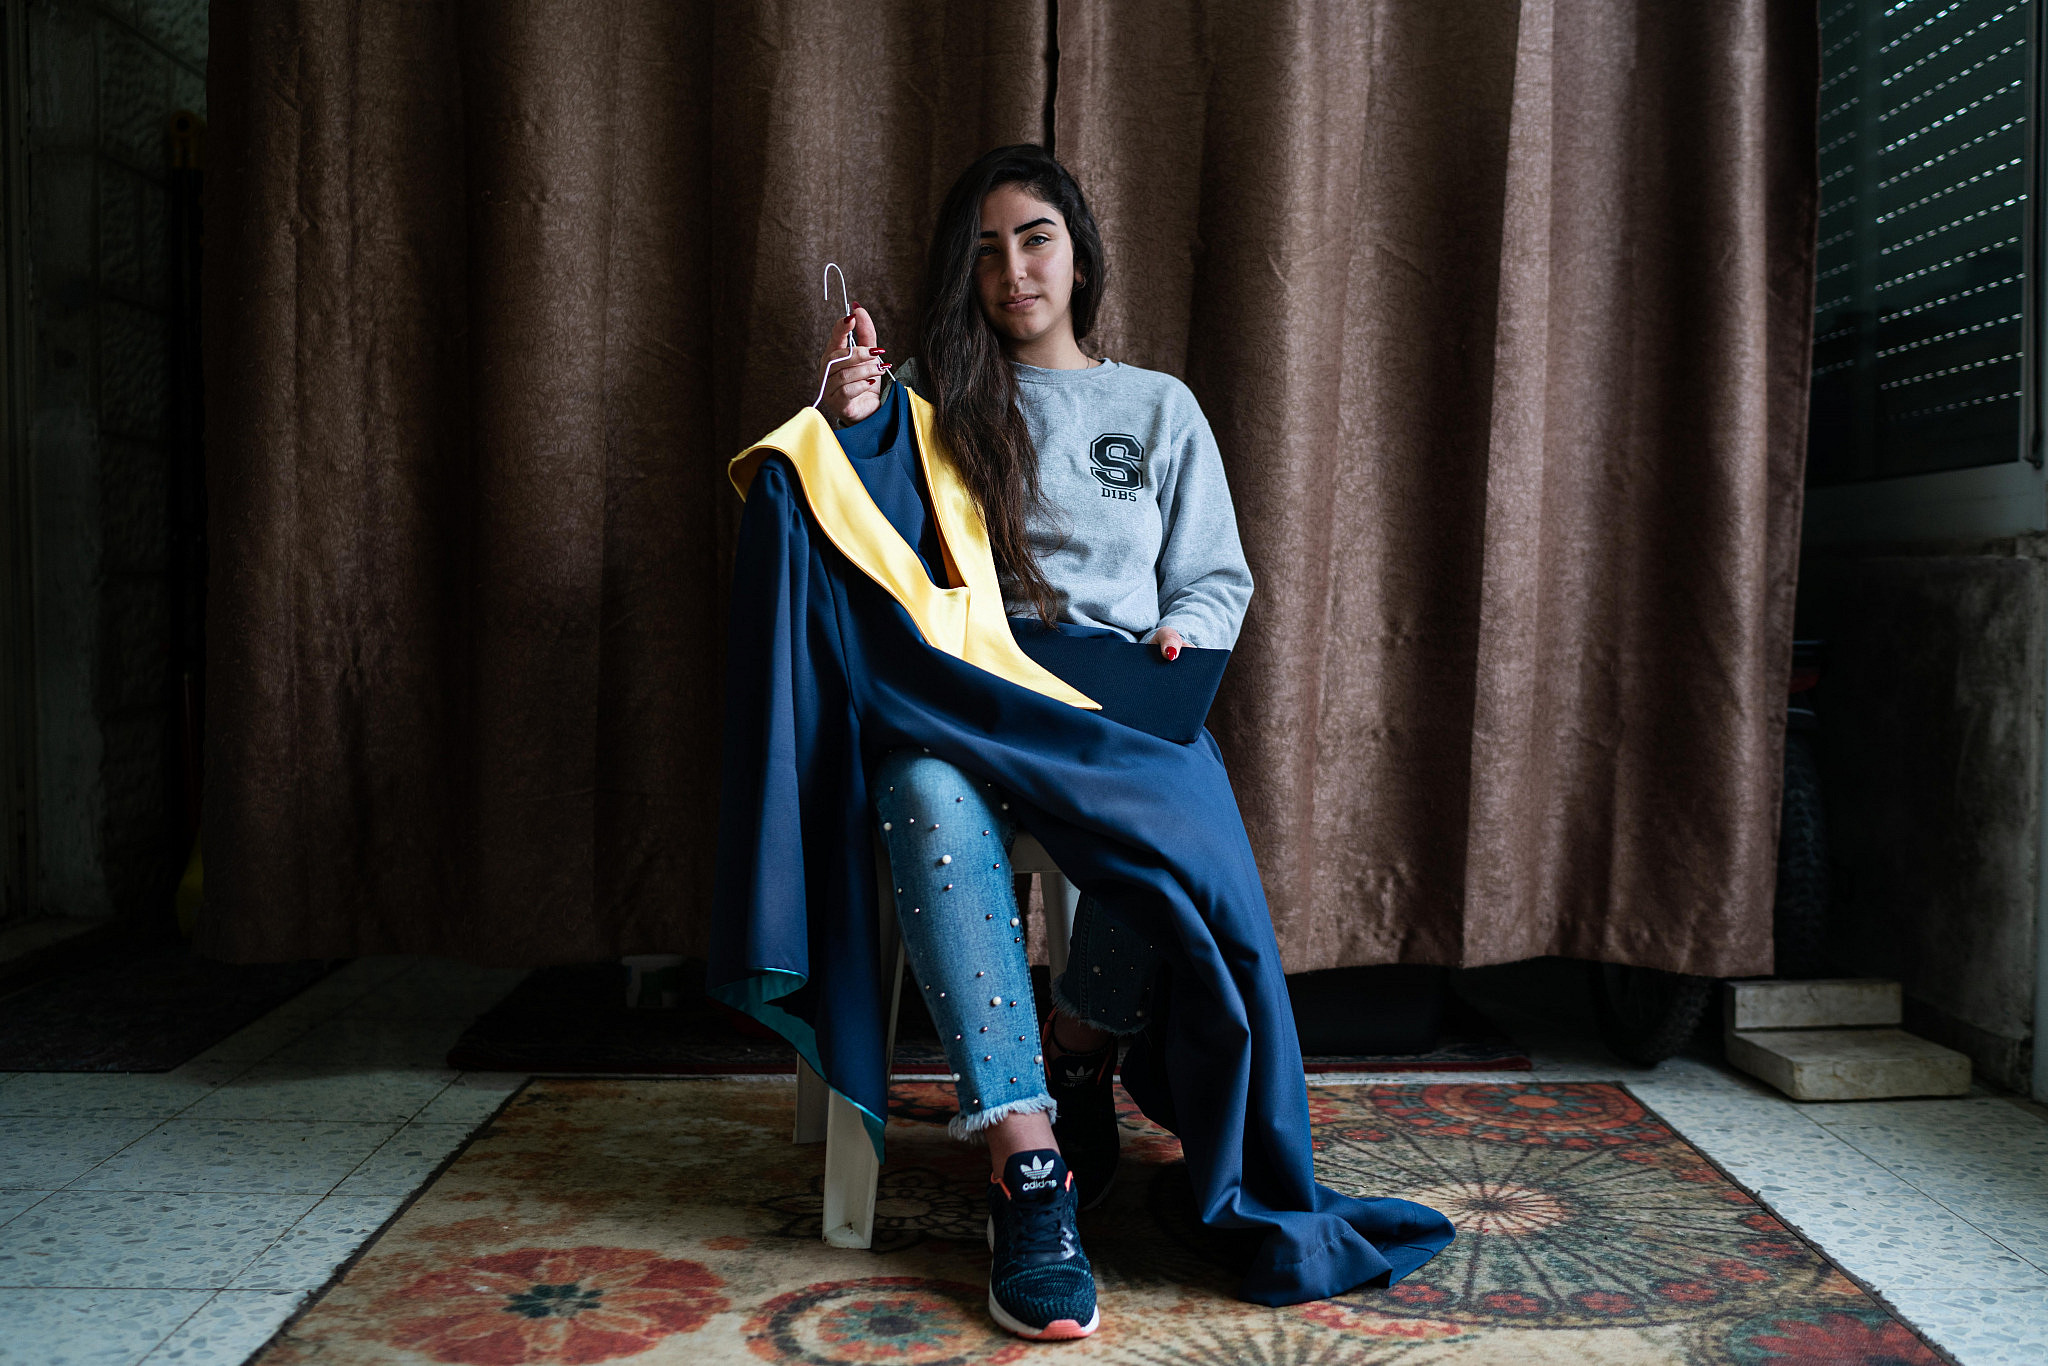 Sabaa Dibs poses with her graduation robe at her home in Bethlehem on March 12, 2020. (Samar Hazboun)